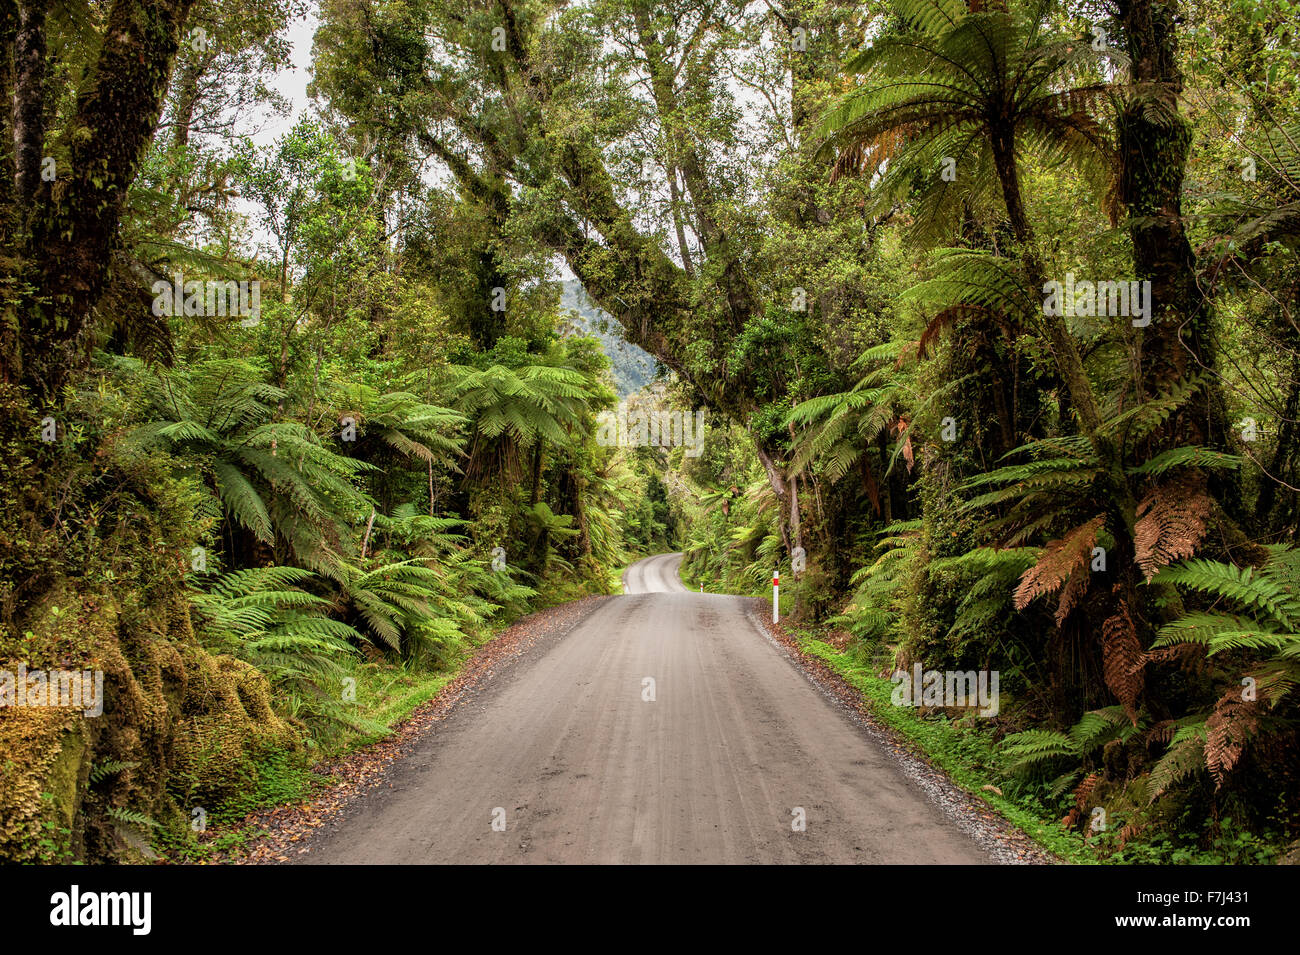 Winding gravel road through the rain forest in Glacier Country, West Coast, South Island, New Zealand - Stock Image